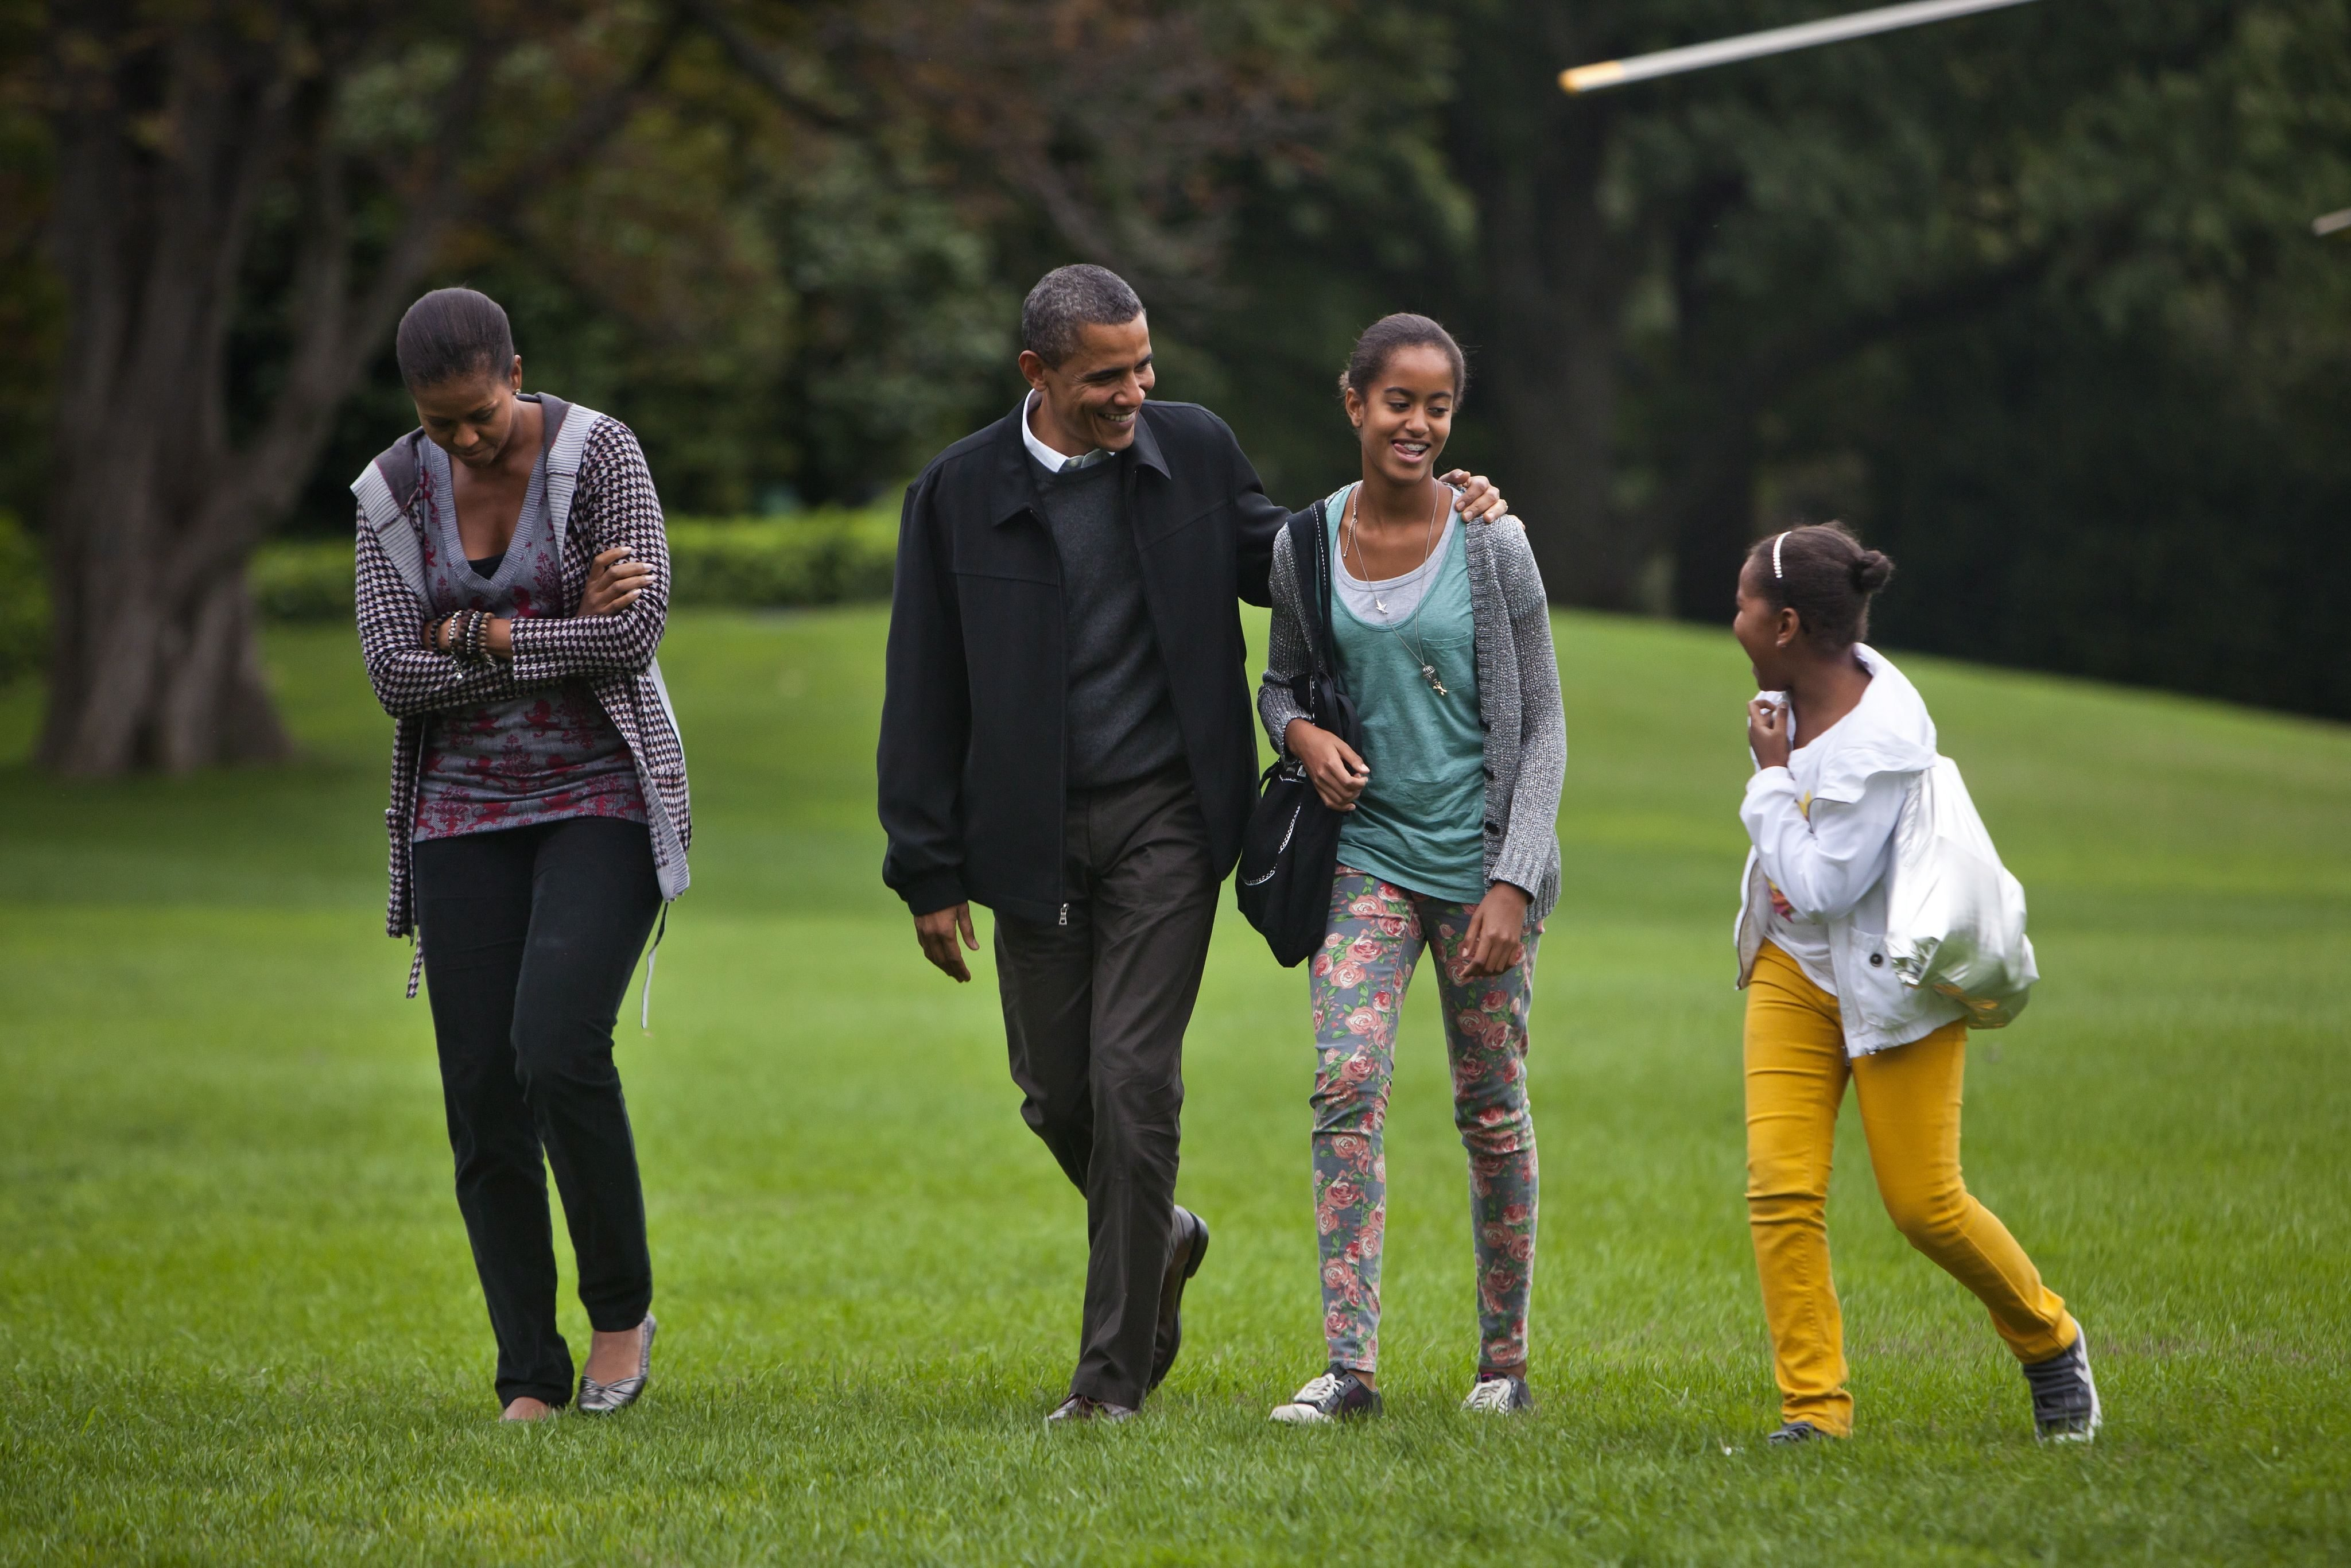 Mandatory Credit: Photo by Jim Lo Scalzo/EPA/Shutterstock (7624580b) U S President Barack Obama with His Wife Michelle and Daughters Malia (under His Arm) and Sasha Returns From Camp David Maryland to the White House in Washington Dc on 03 October 2010 the President's Week Ahead Includes a Meeting with the Economic Recovery Advisory Board As Well As the First Ever White House Summit on Community Colleges United States Washington Usa President Obama Returns White House - Oct 2010